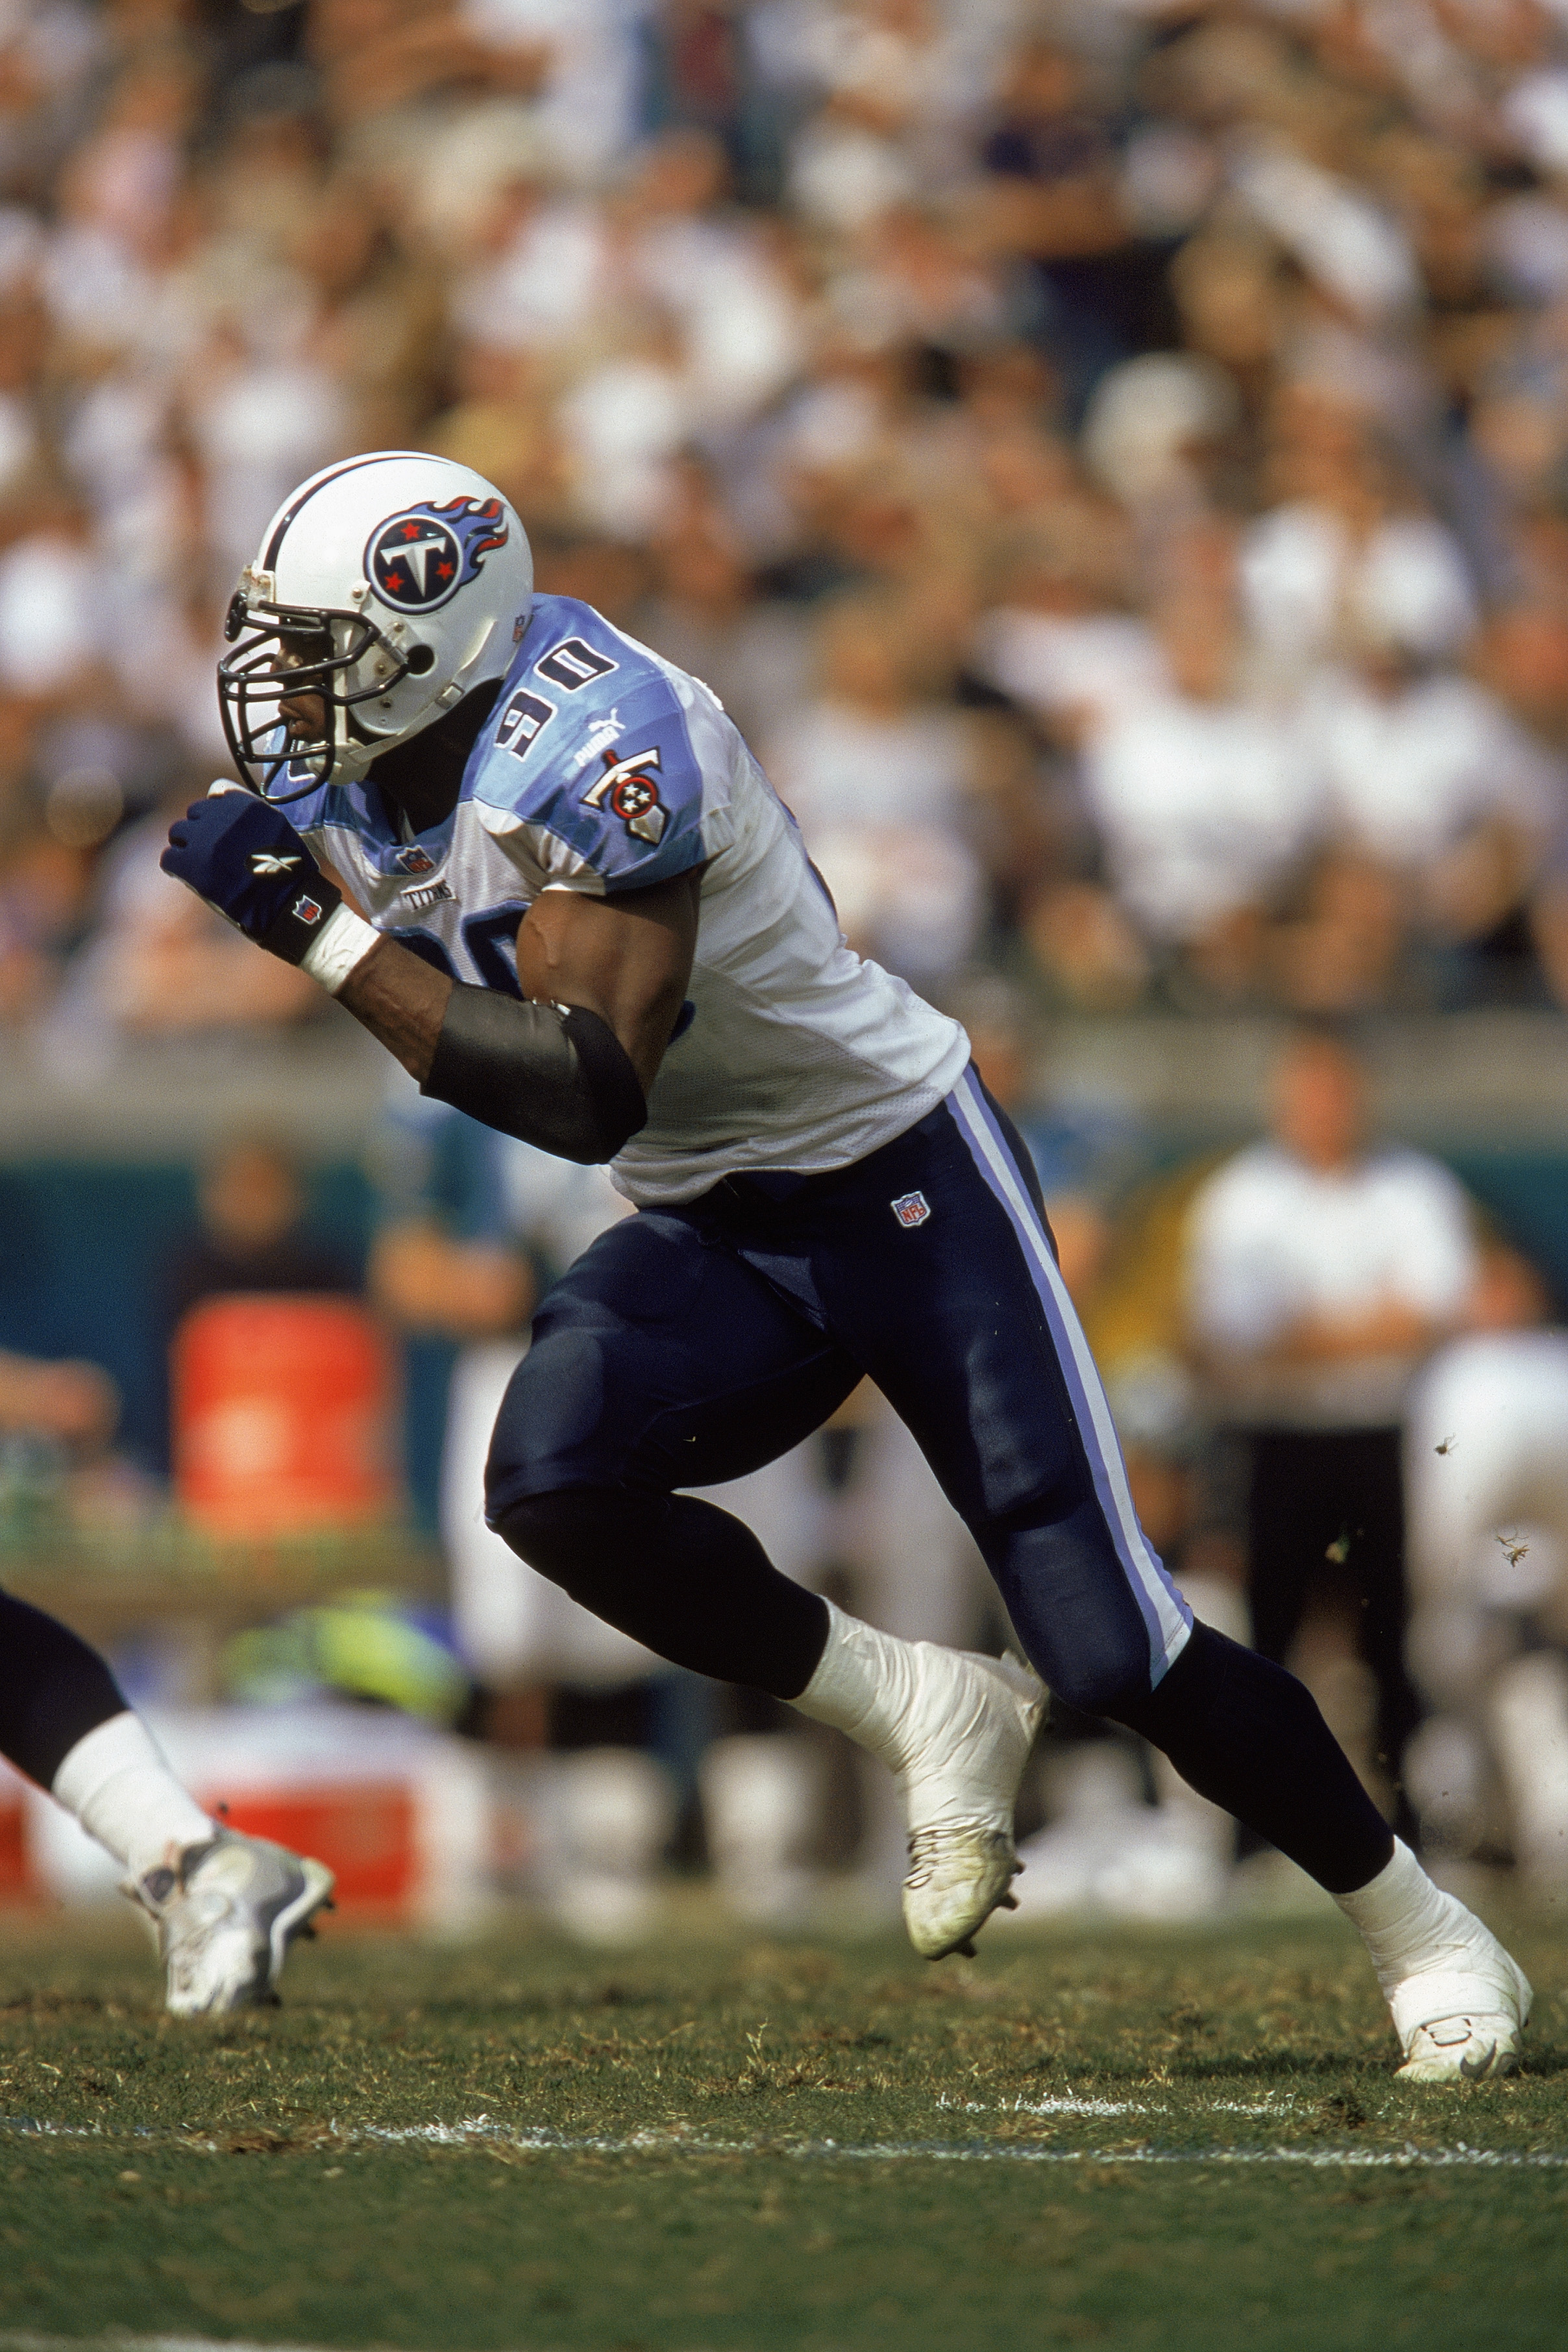 JACKSONVILLE, FL - JANUARY 23:  Jevon Kearse #90 of the Tennessee Titans sprints up the field during an NFL game against the Jacksonville Jaguars at Altell Stadium on January 23, 2000 in Jacksonville, Florida.  The Titans defeated the Jaguars 33-14.  (Pho